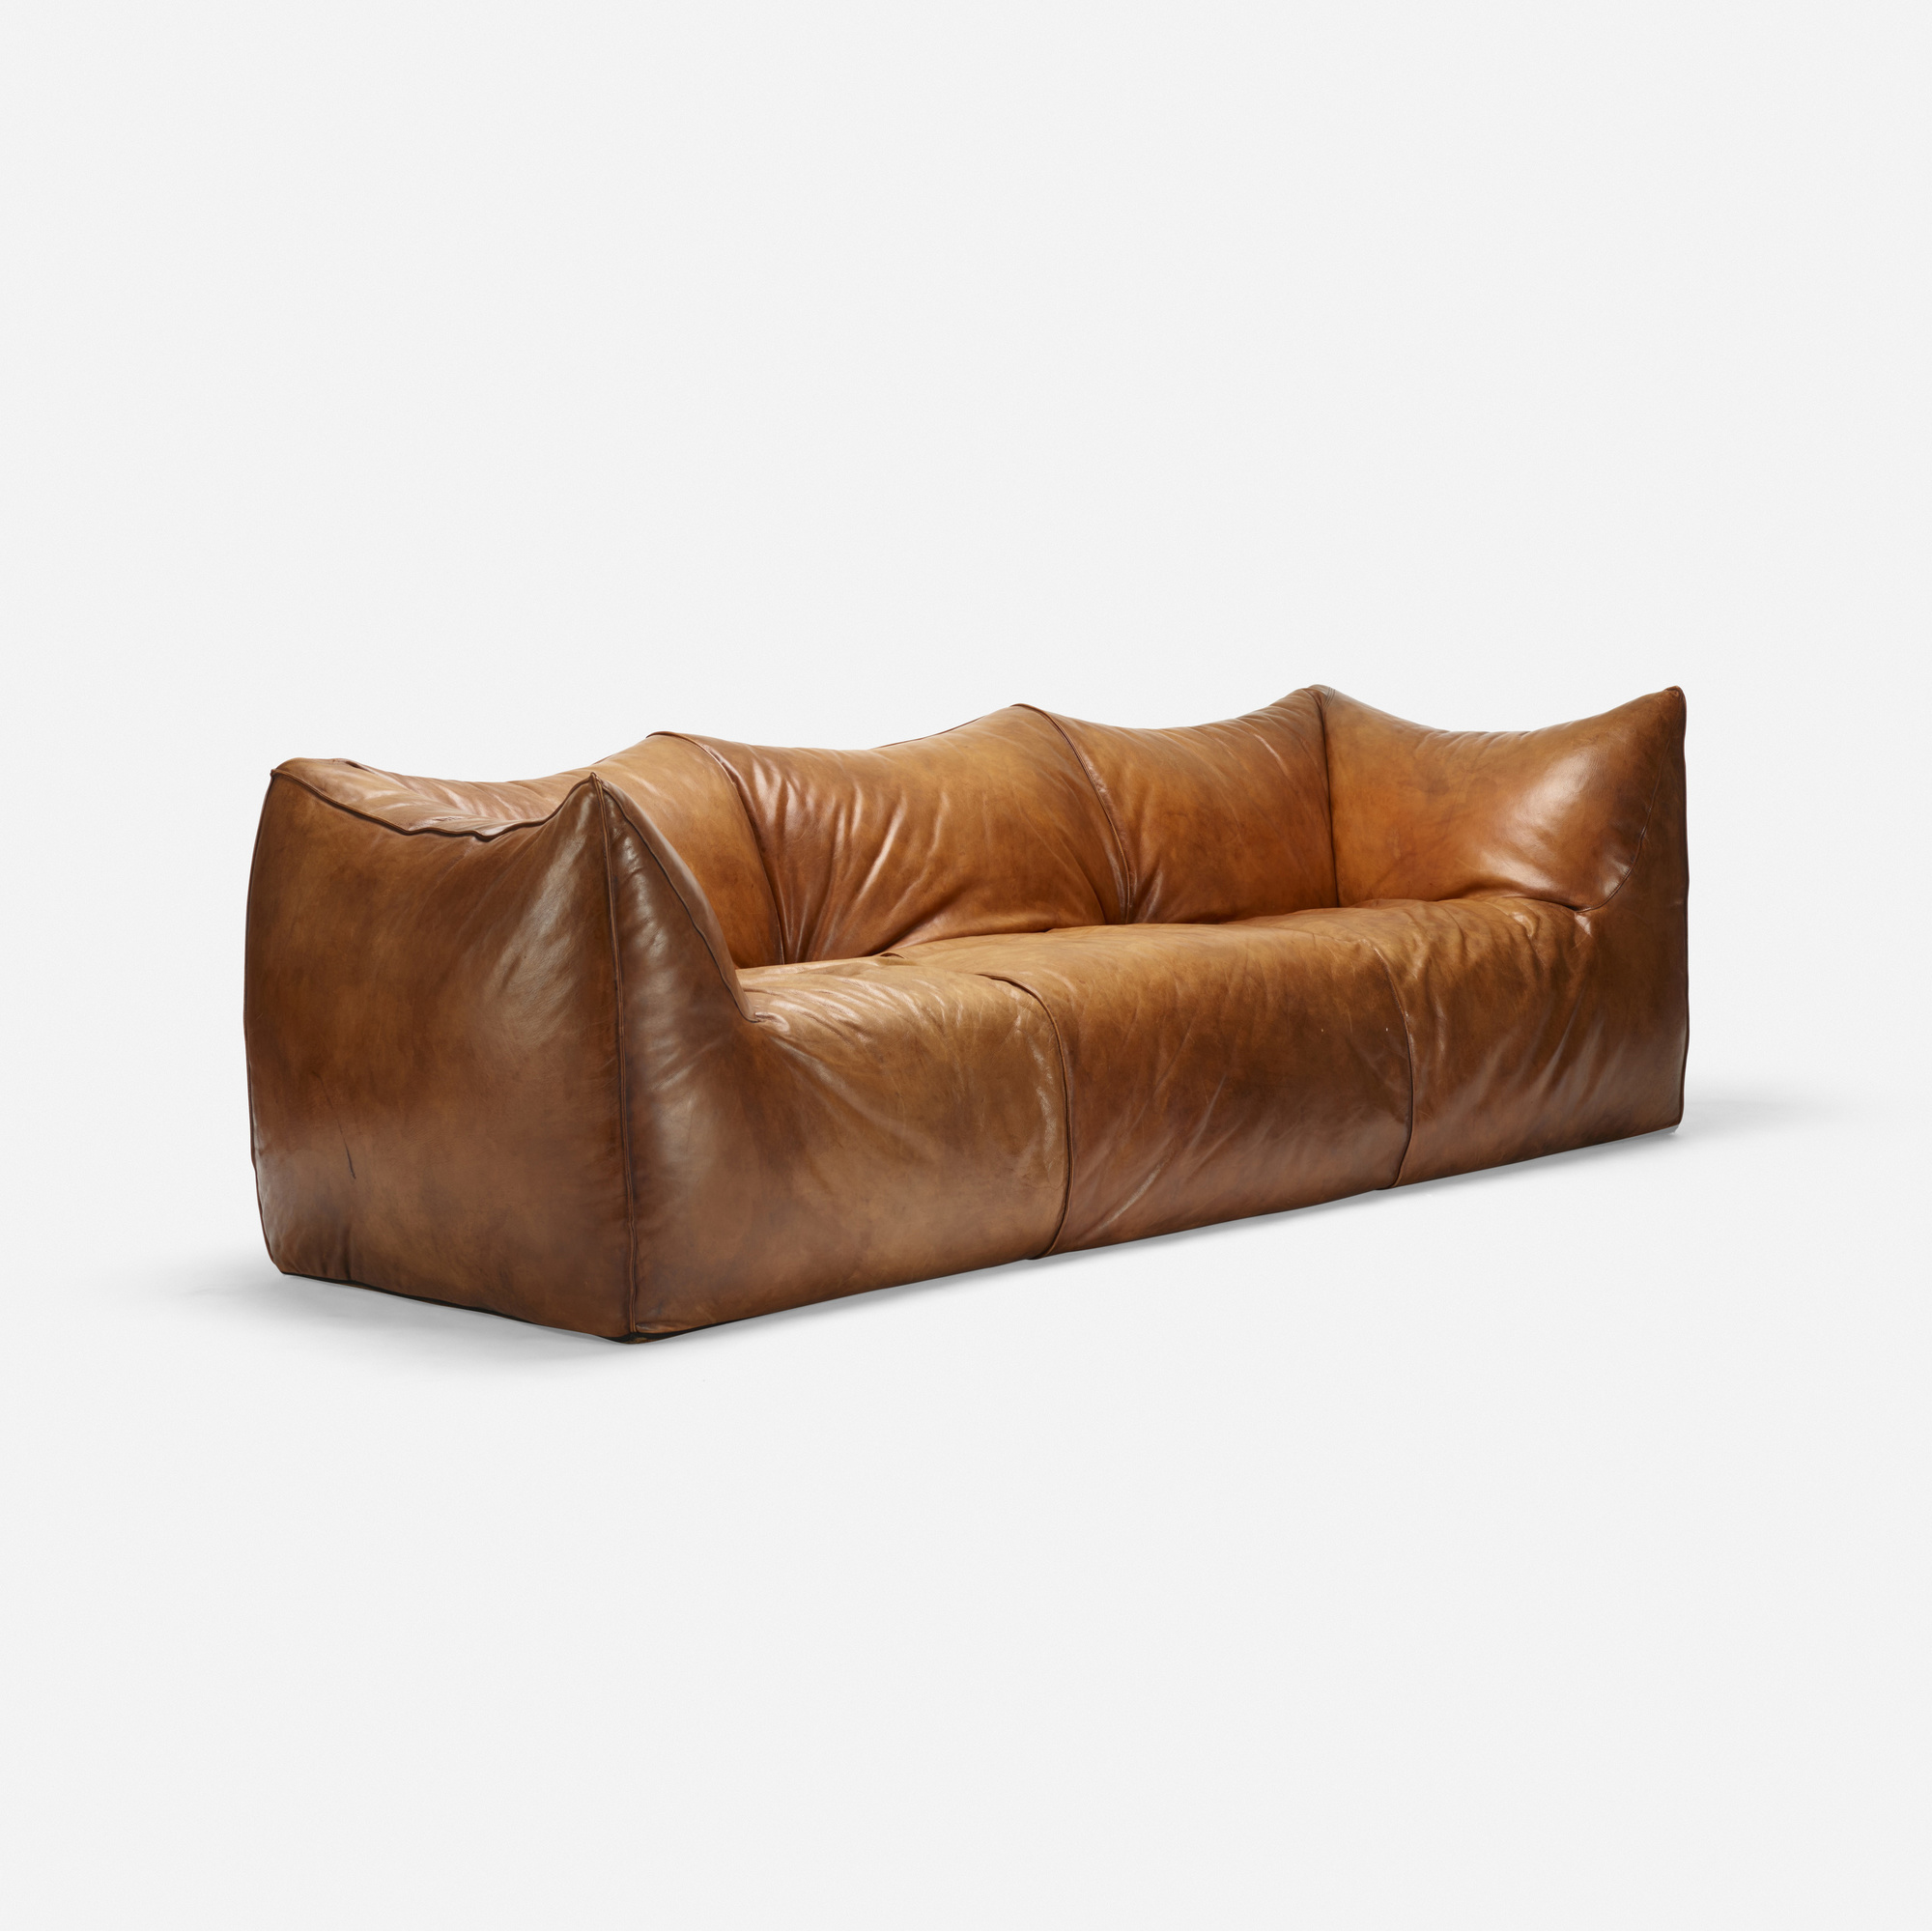 261: Mario Bellini / Le Bambole sofa (2 of 2)